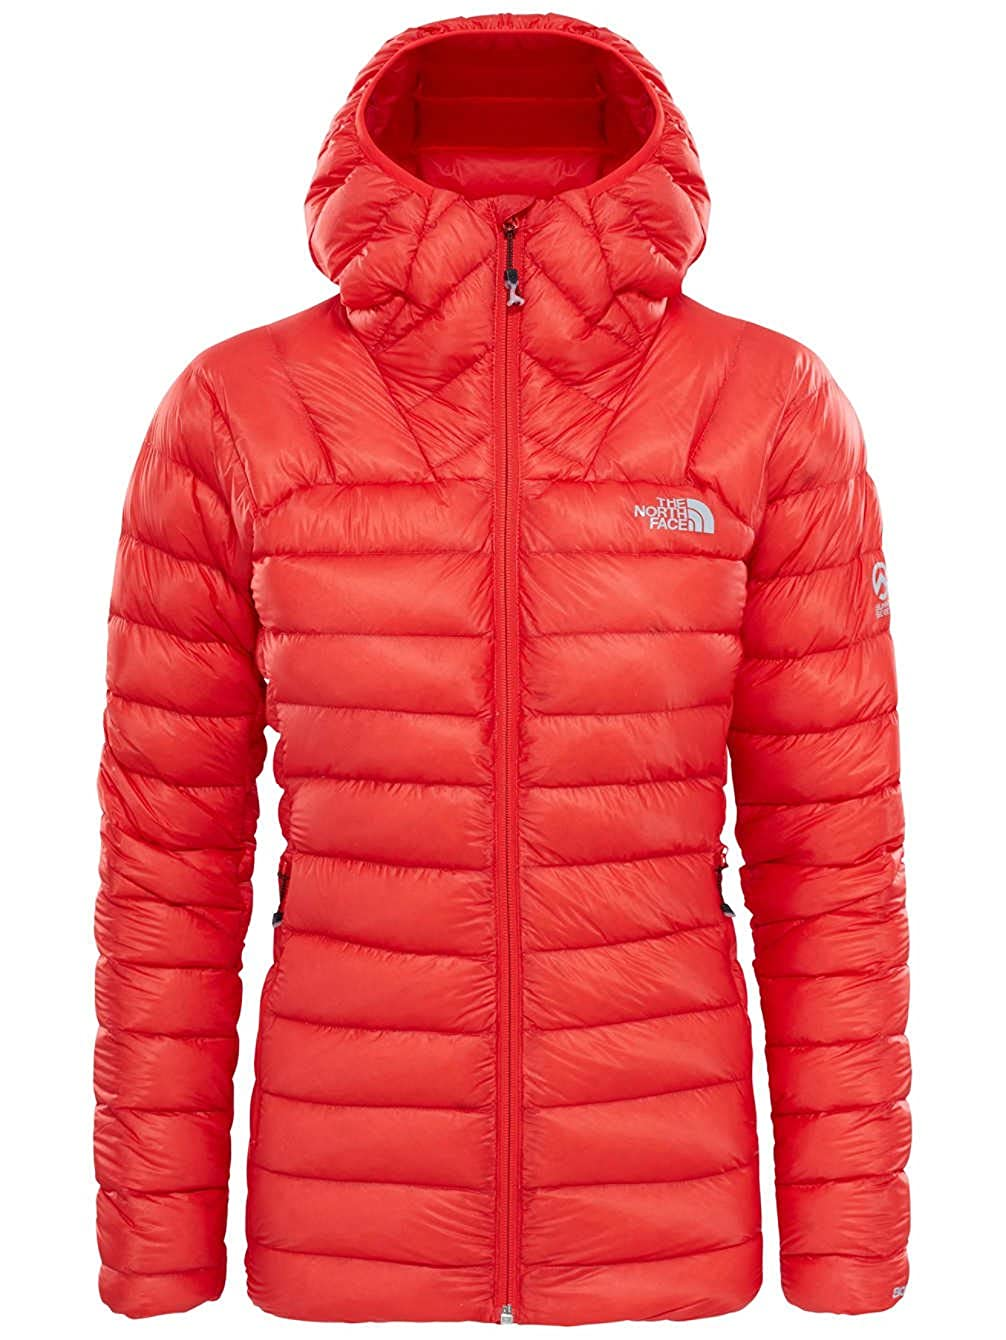 8c9fe6100 Amazon.com: The North Face Summit L3 Down Hooded Women's Puffer ...